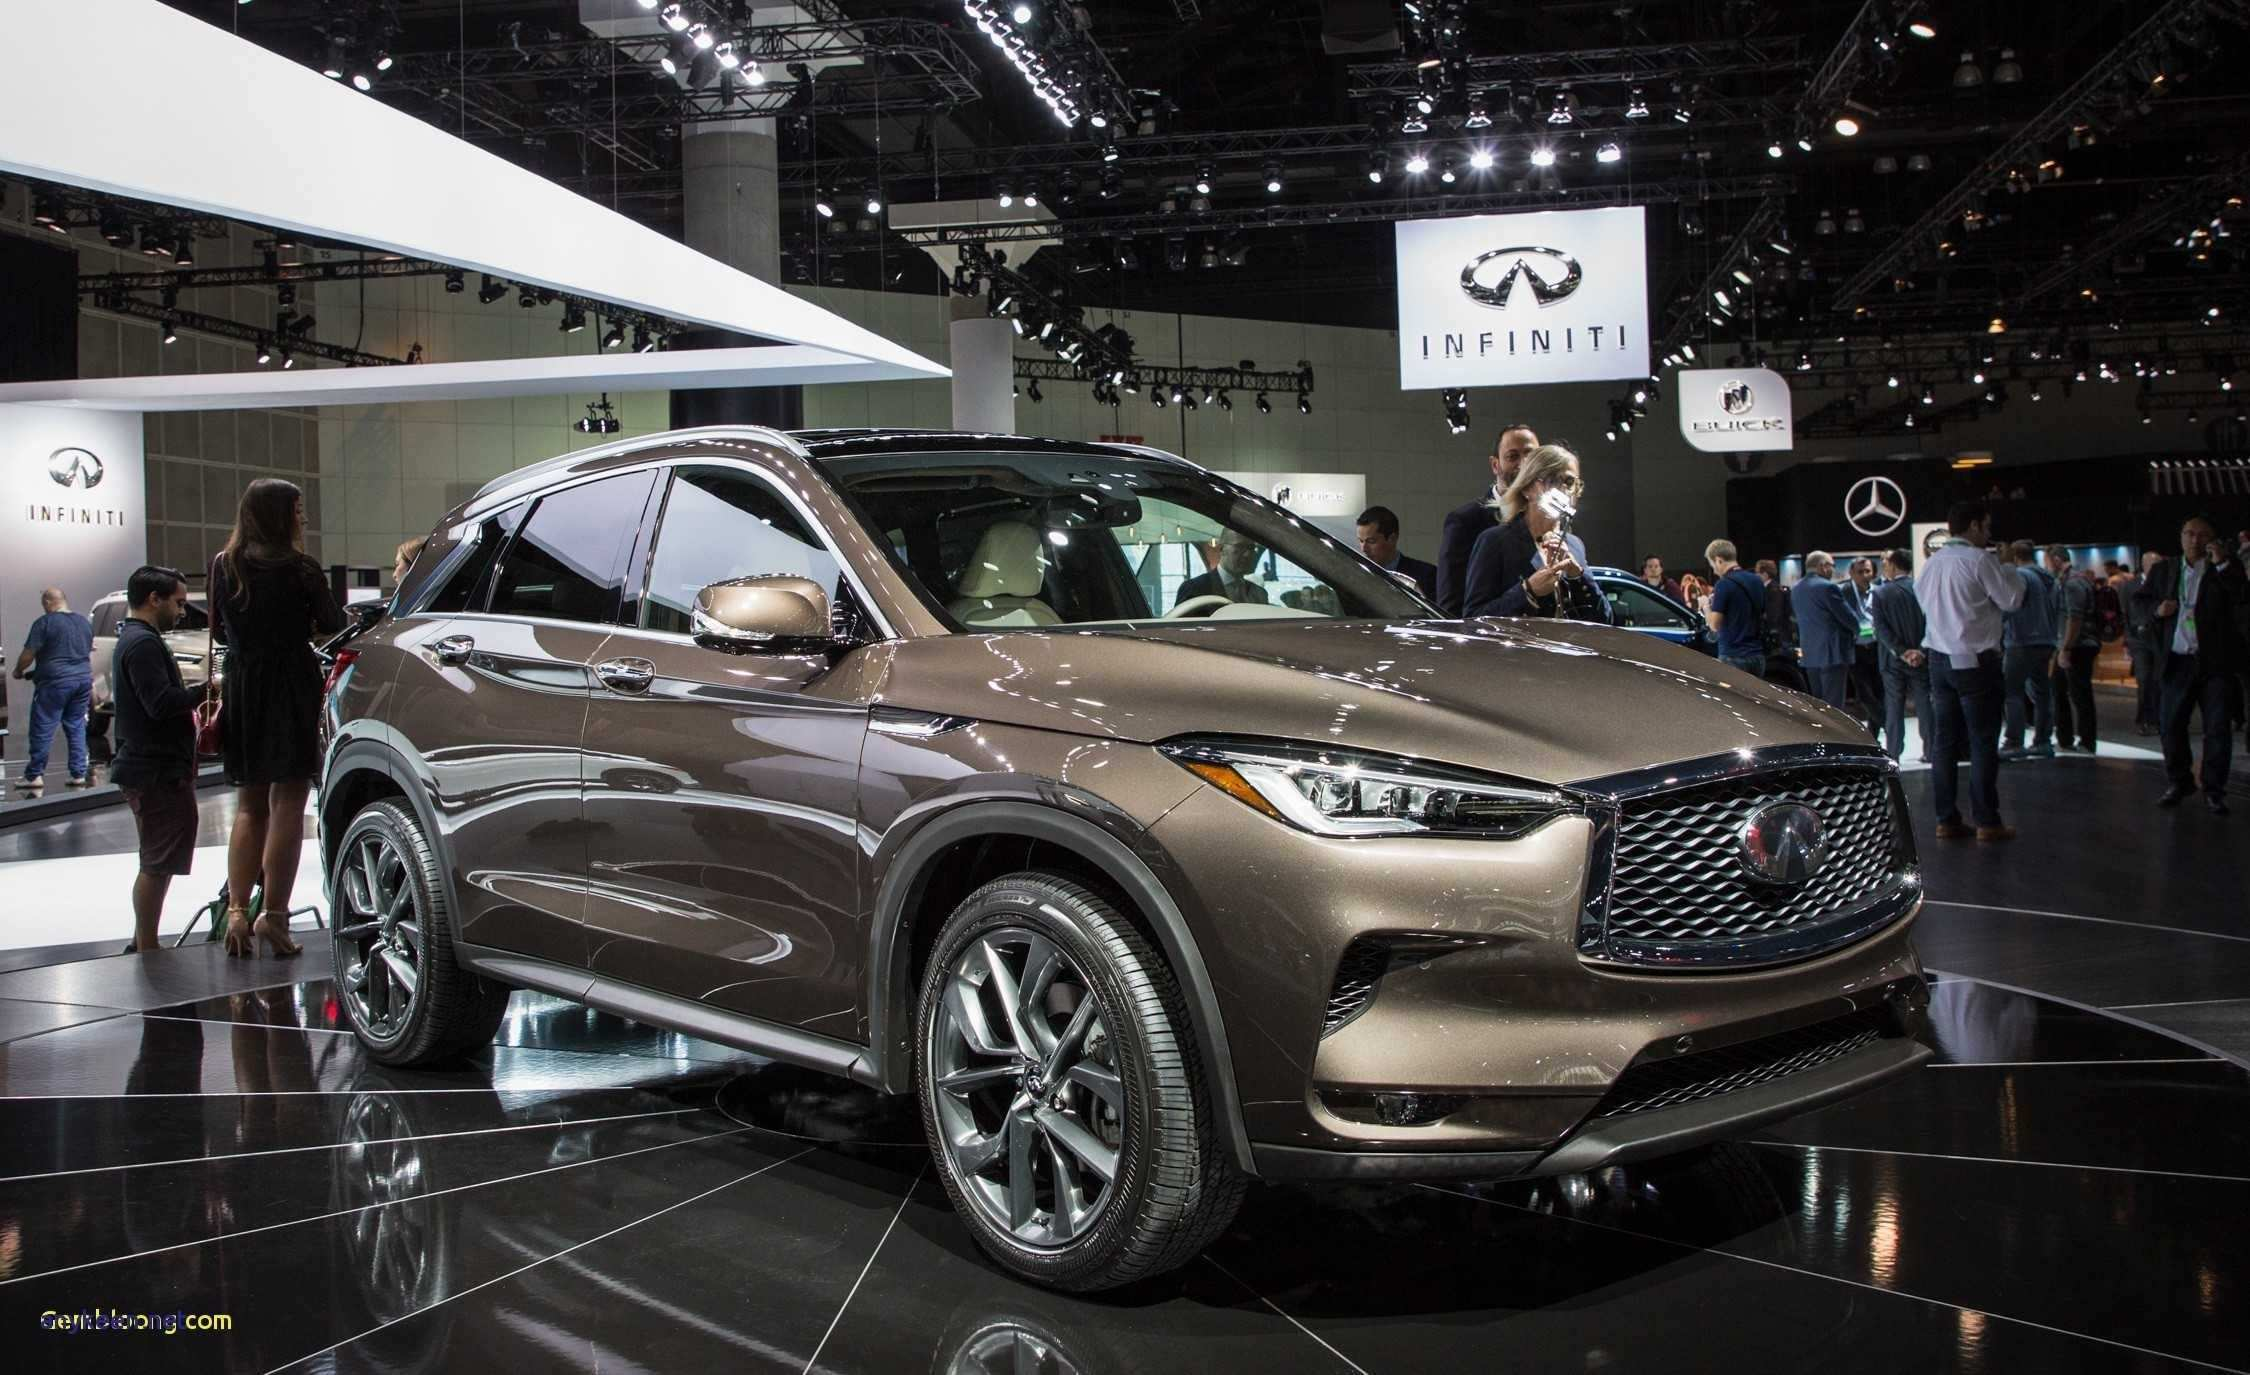 84 Concept of Infiniti New Models 2019 Concept Redesign And Review Research New by Infiniti New Models 2019 Concept Redesign And Review